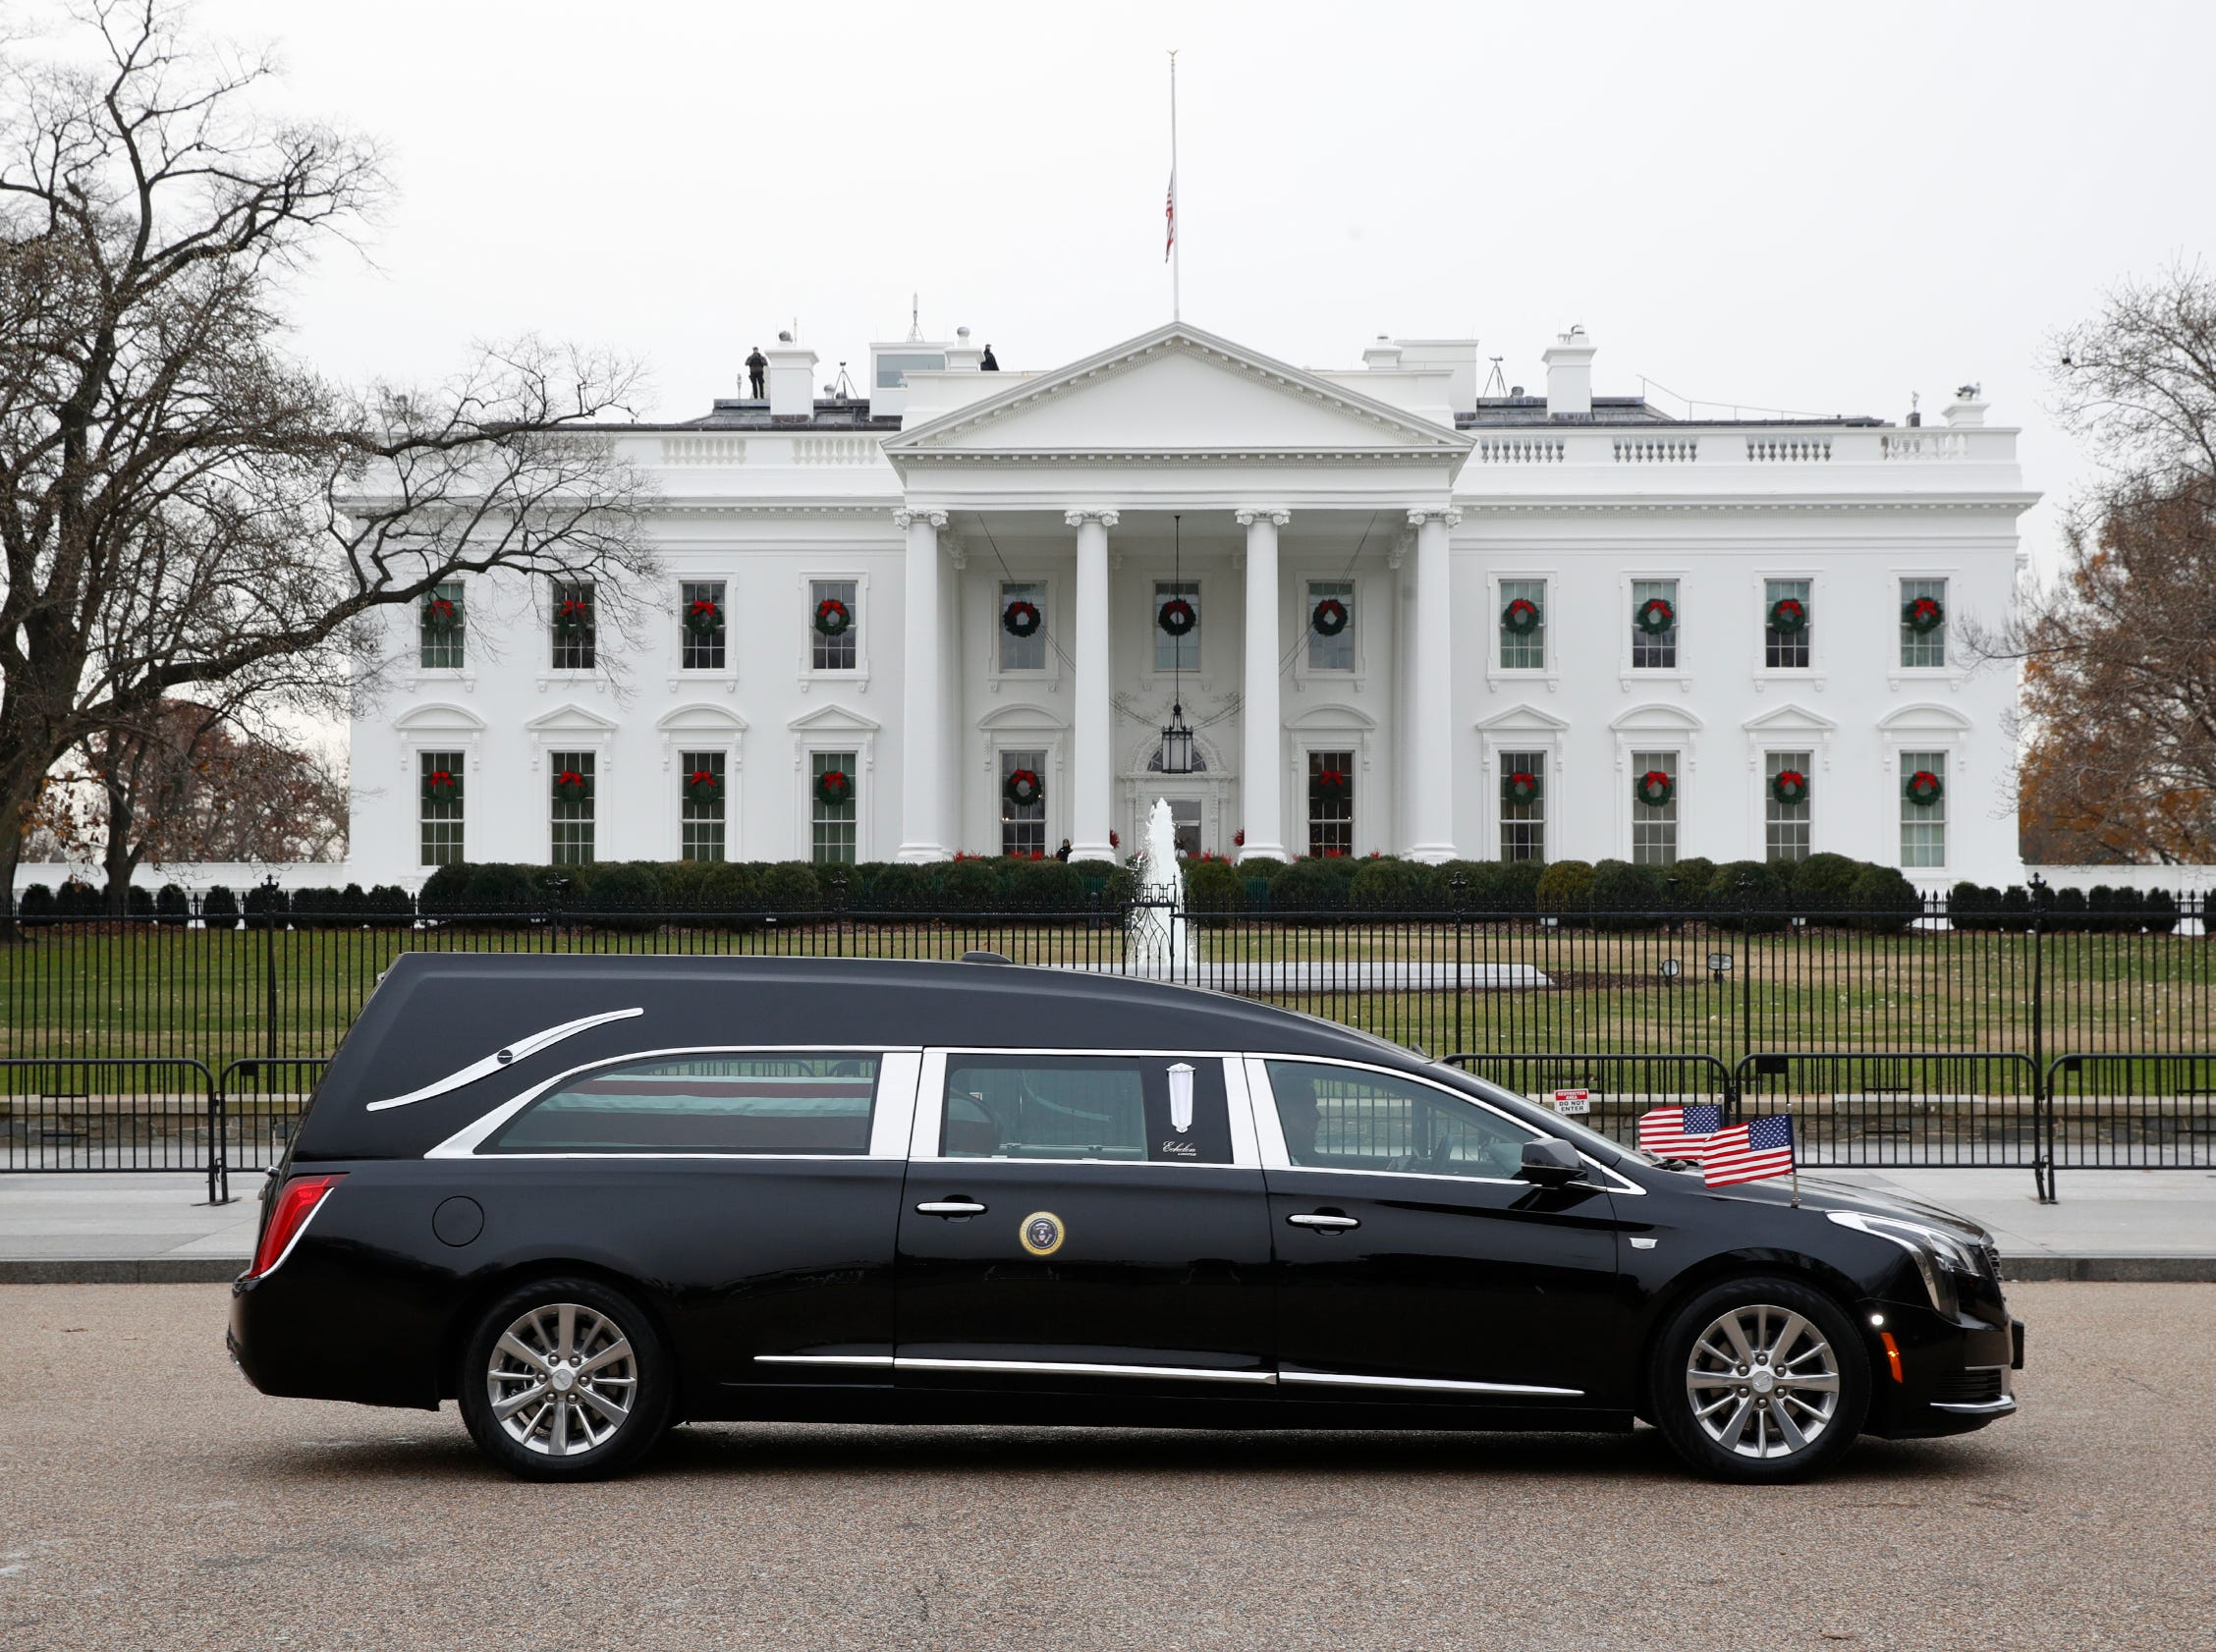 The hearse carrying the flag-draped casket of former President George H.W. Bush passes by the White House from the Capitol, heading to a State Funeral at the National Cathedral.